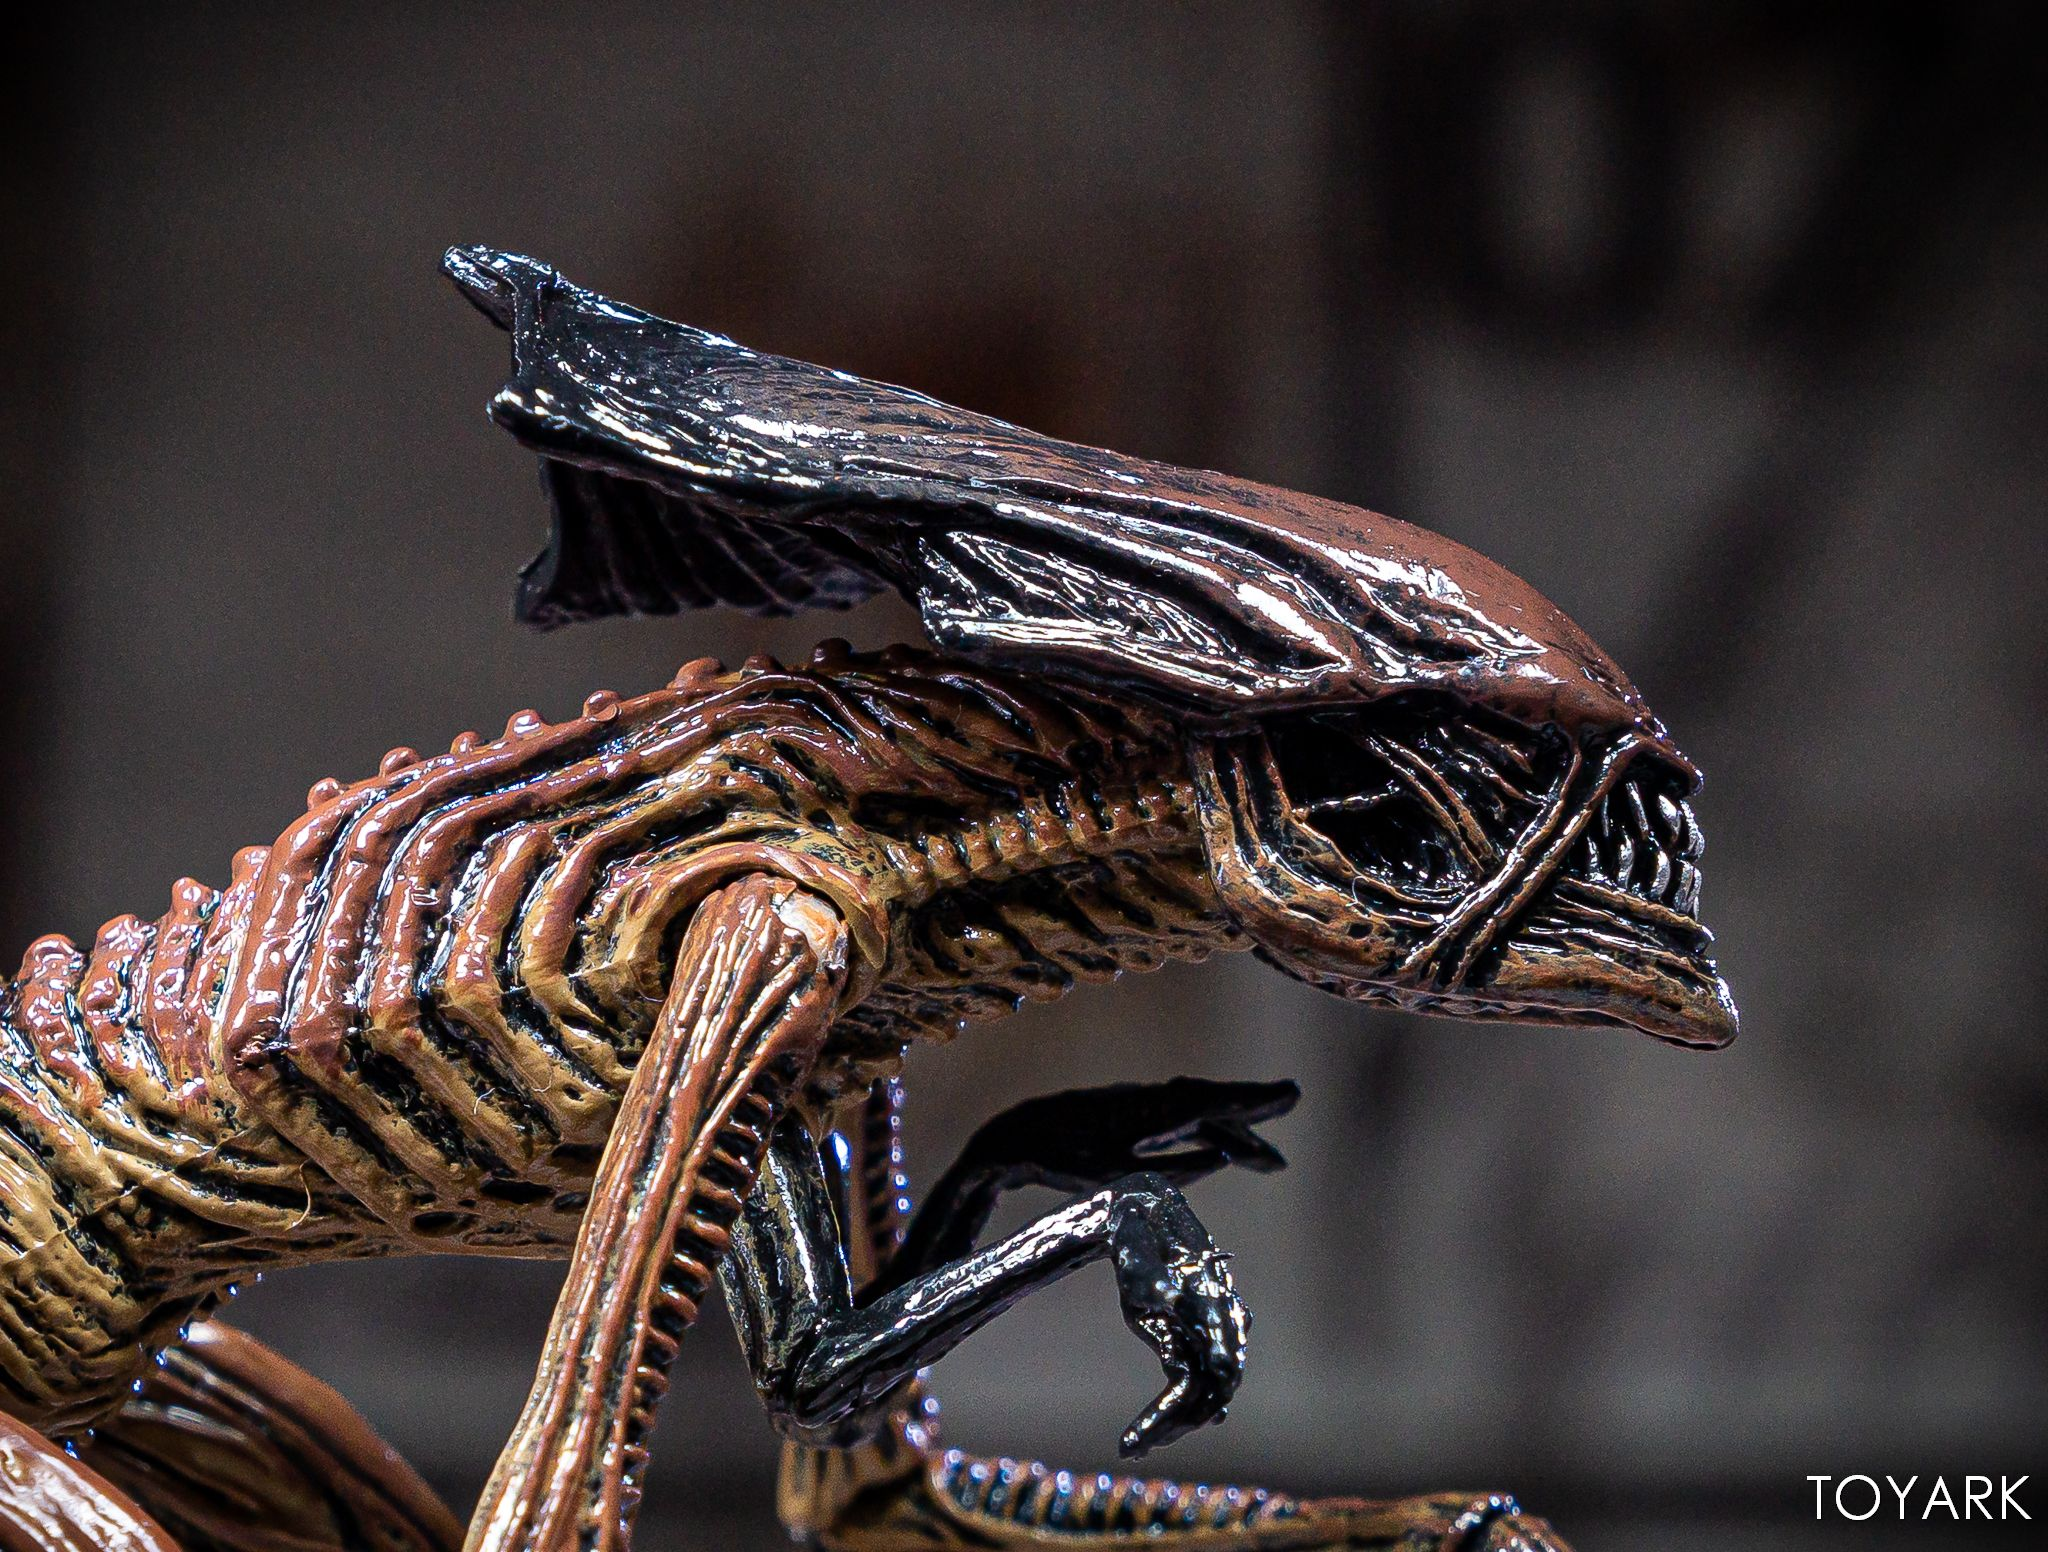 https://news.toyark.com/wp-content/uploads/sites/4/2019/08/Alien-3-Creature-Set-015.jpg